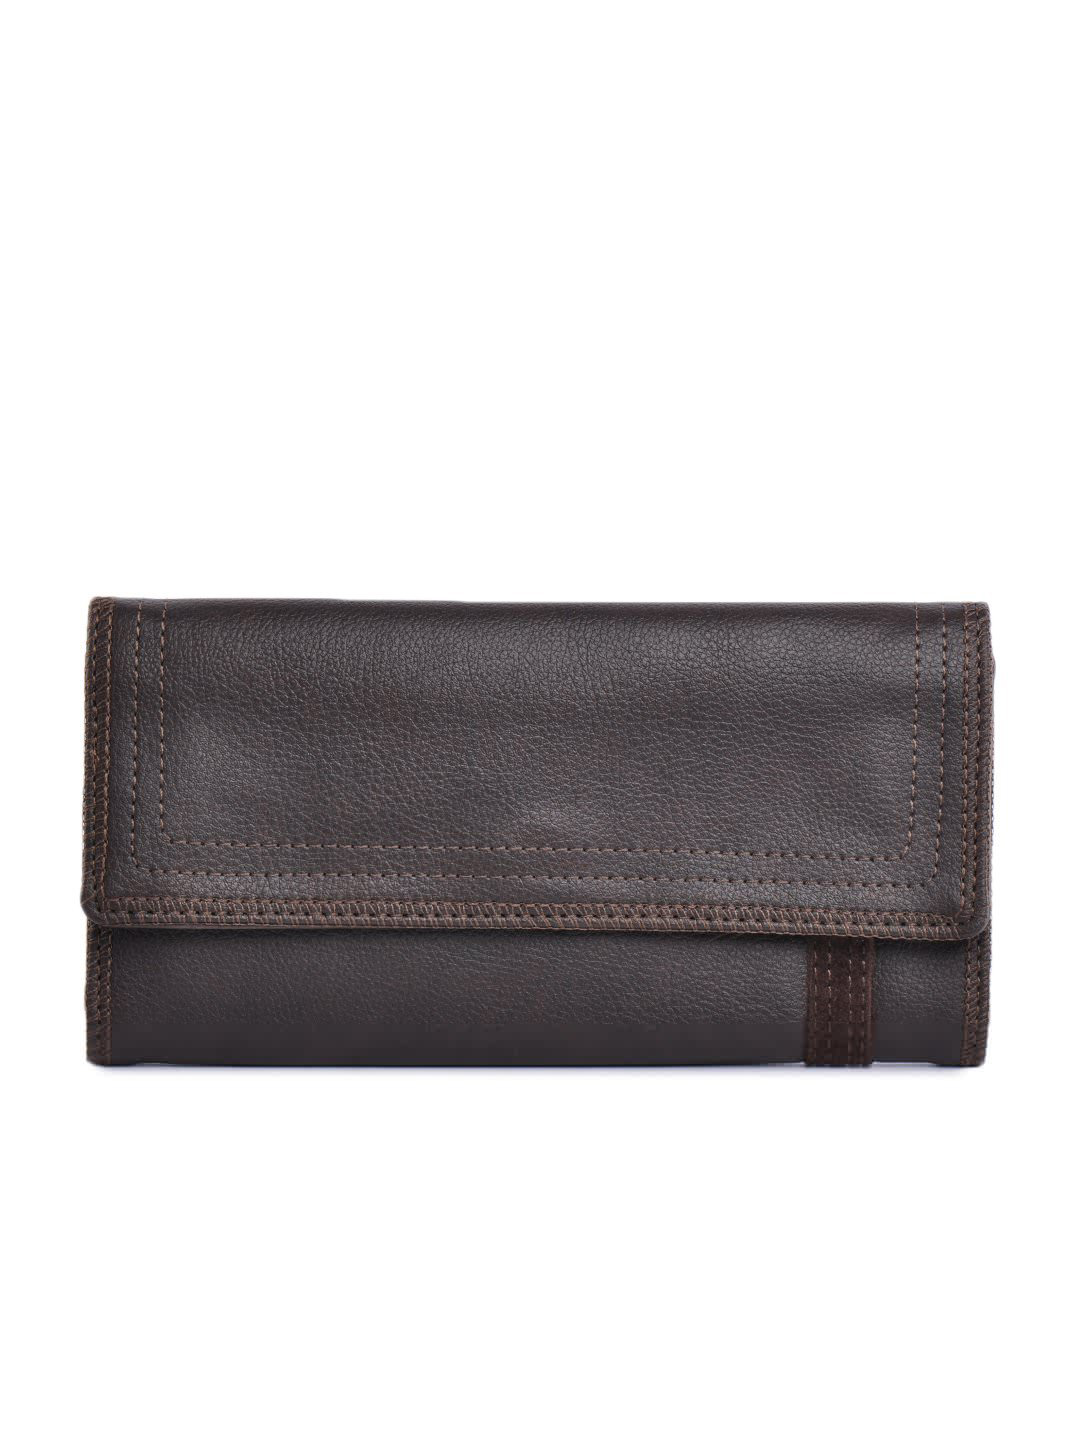 Baggit Women Oscar Taj Brown Wallet